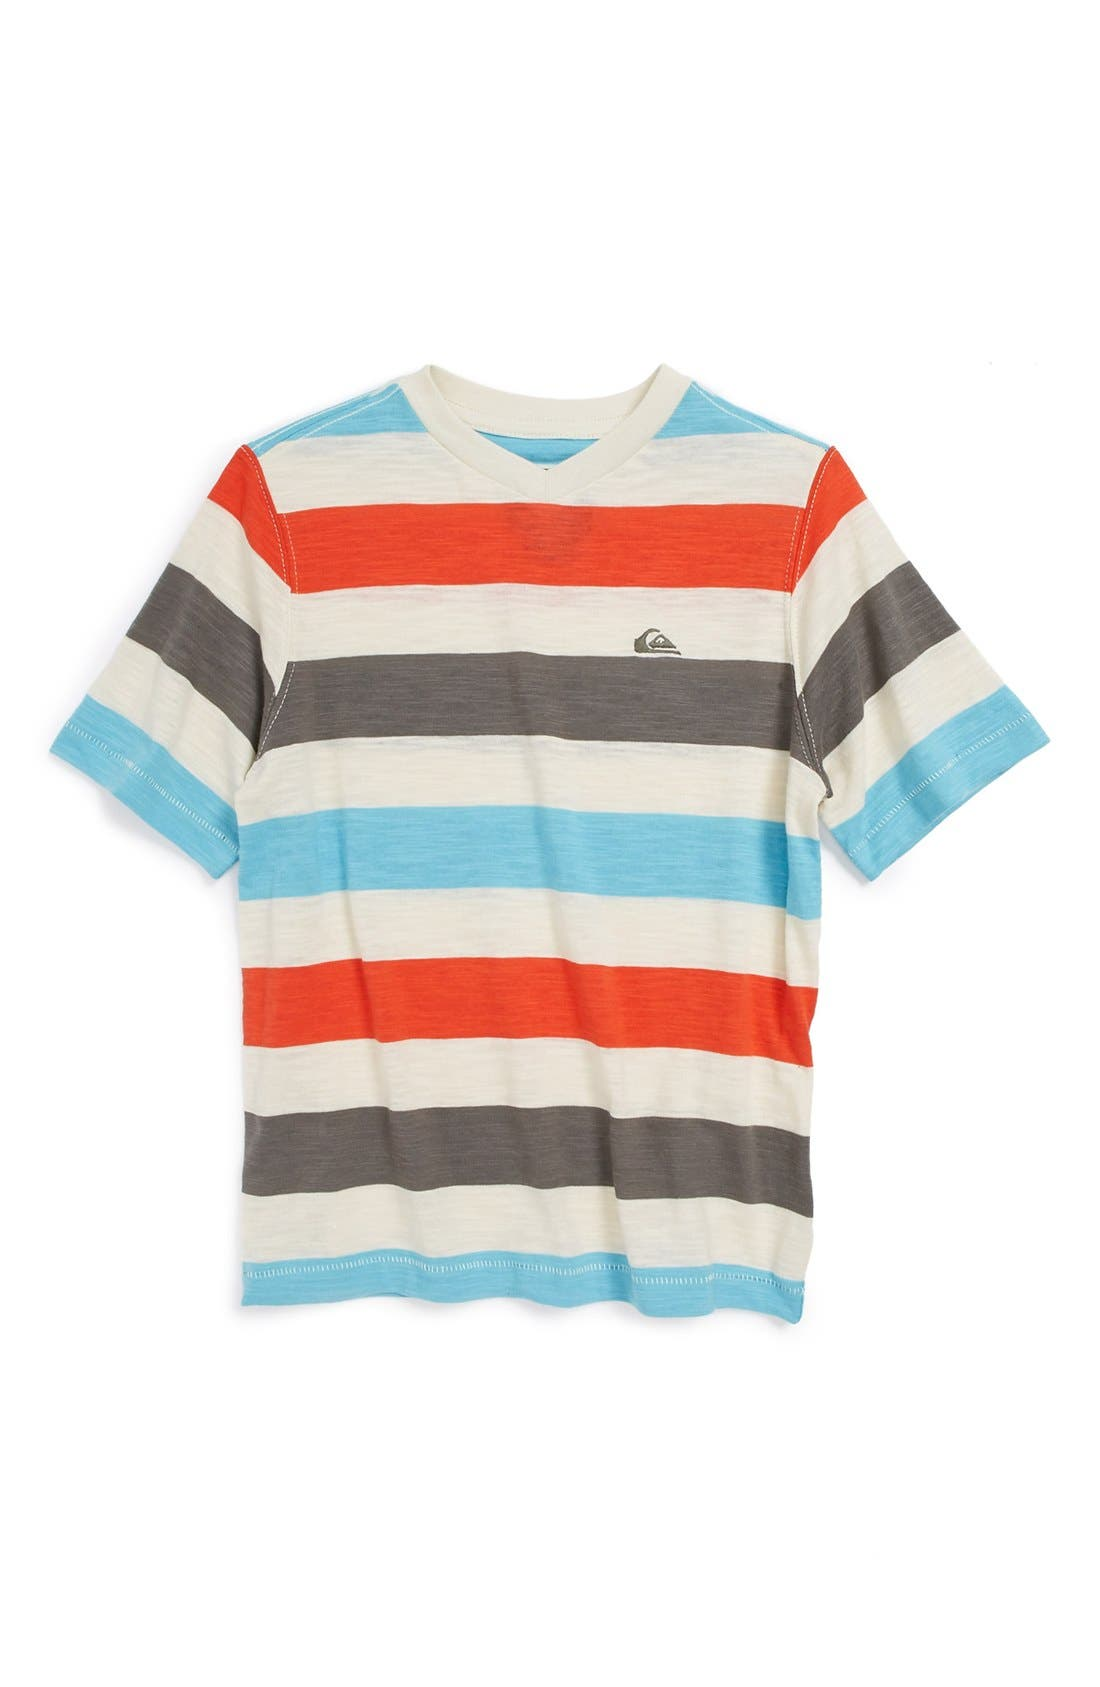 Alternate Image 1 Selected - Quiksilver 'Tower Rip' T-Shirt (Little Boys)